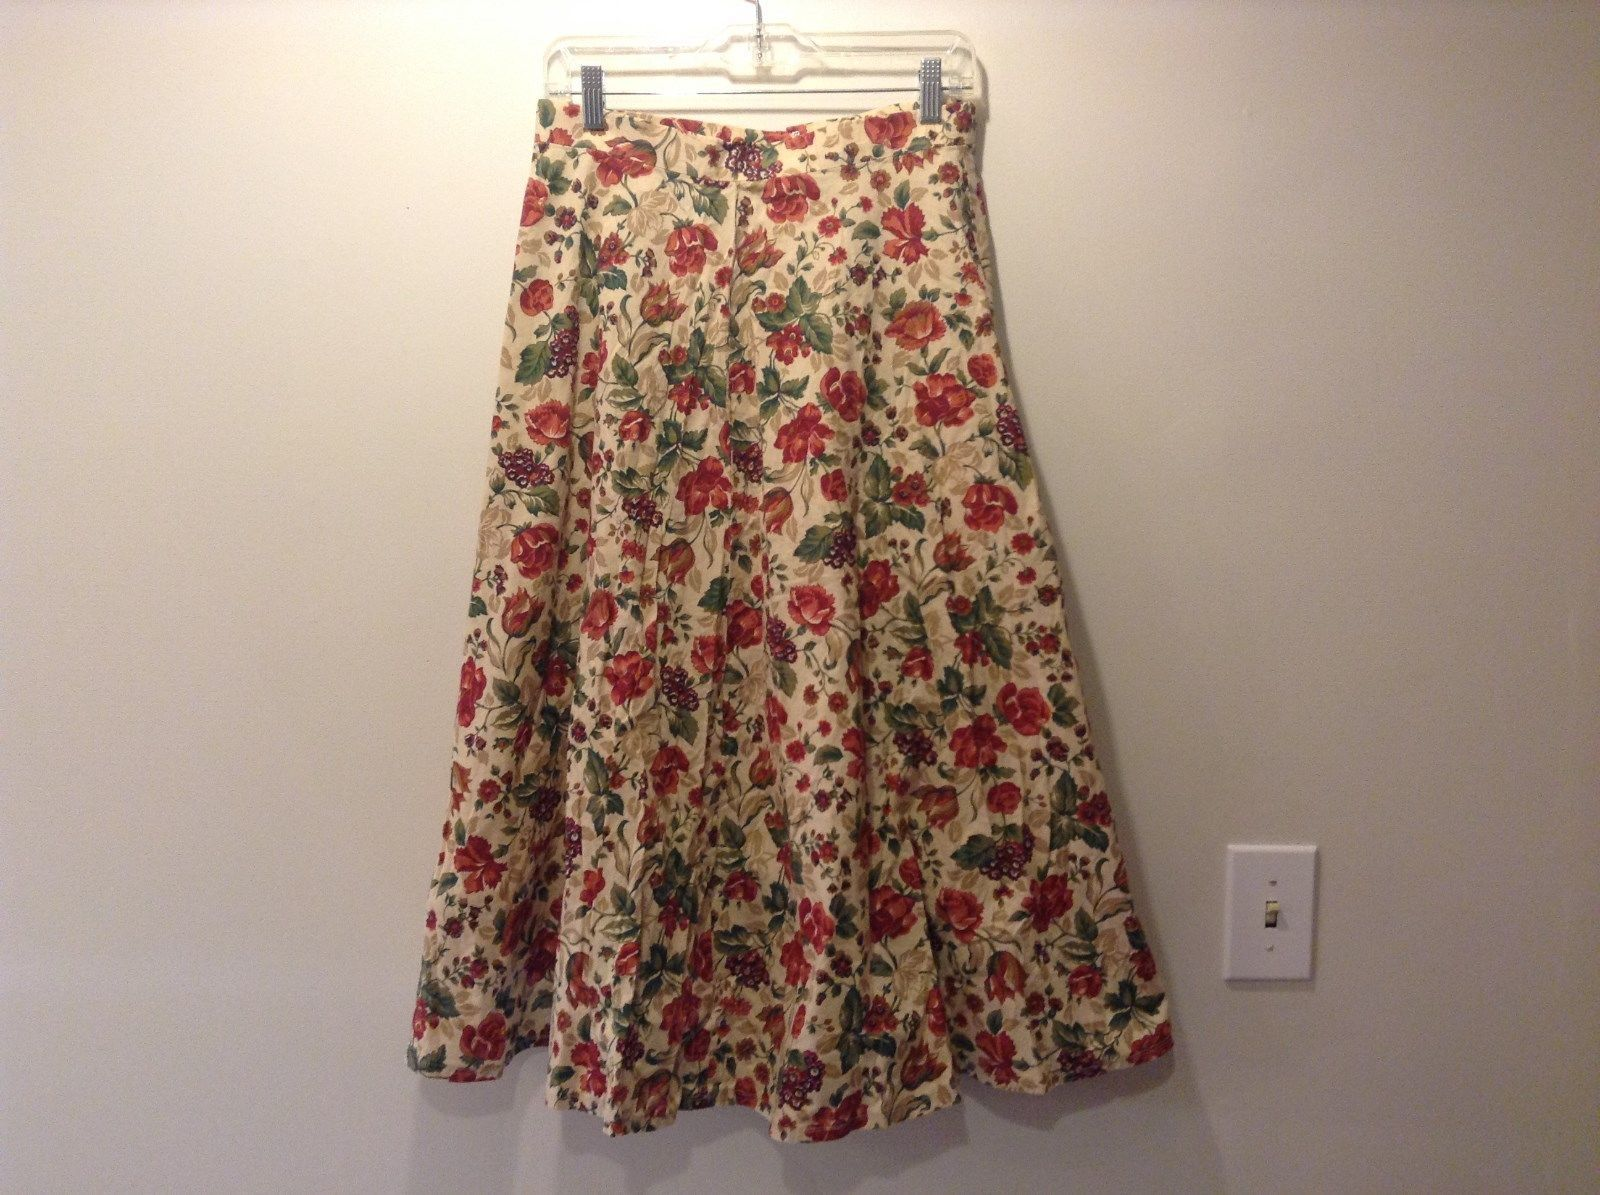 Flower Pattern Tan Skirt Free Flowing Bottom No Size Tag Measurements Below